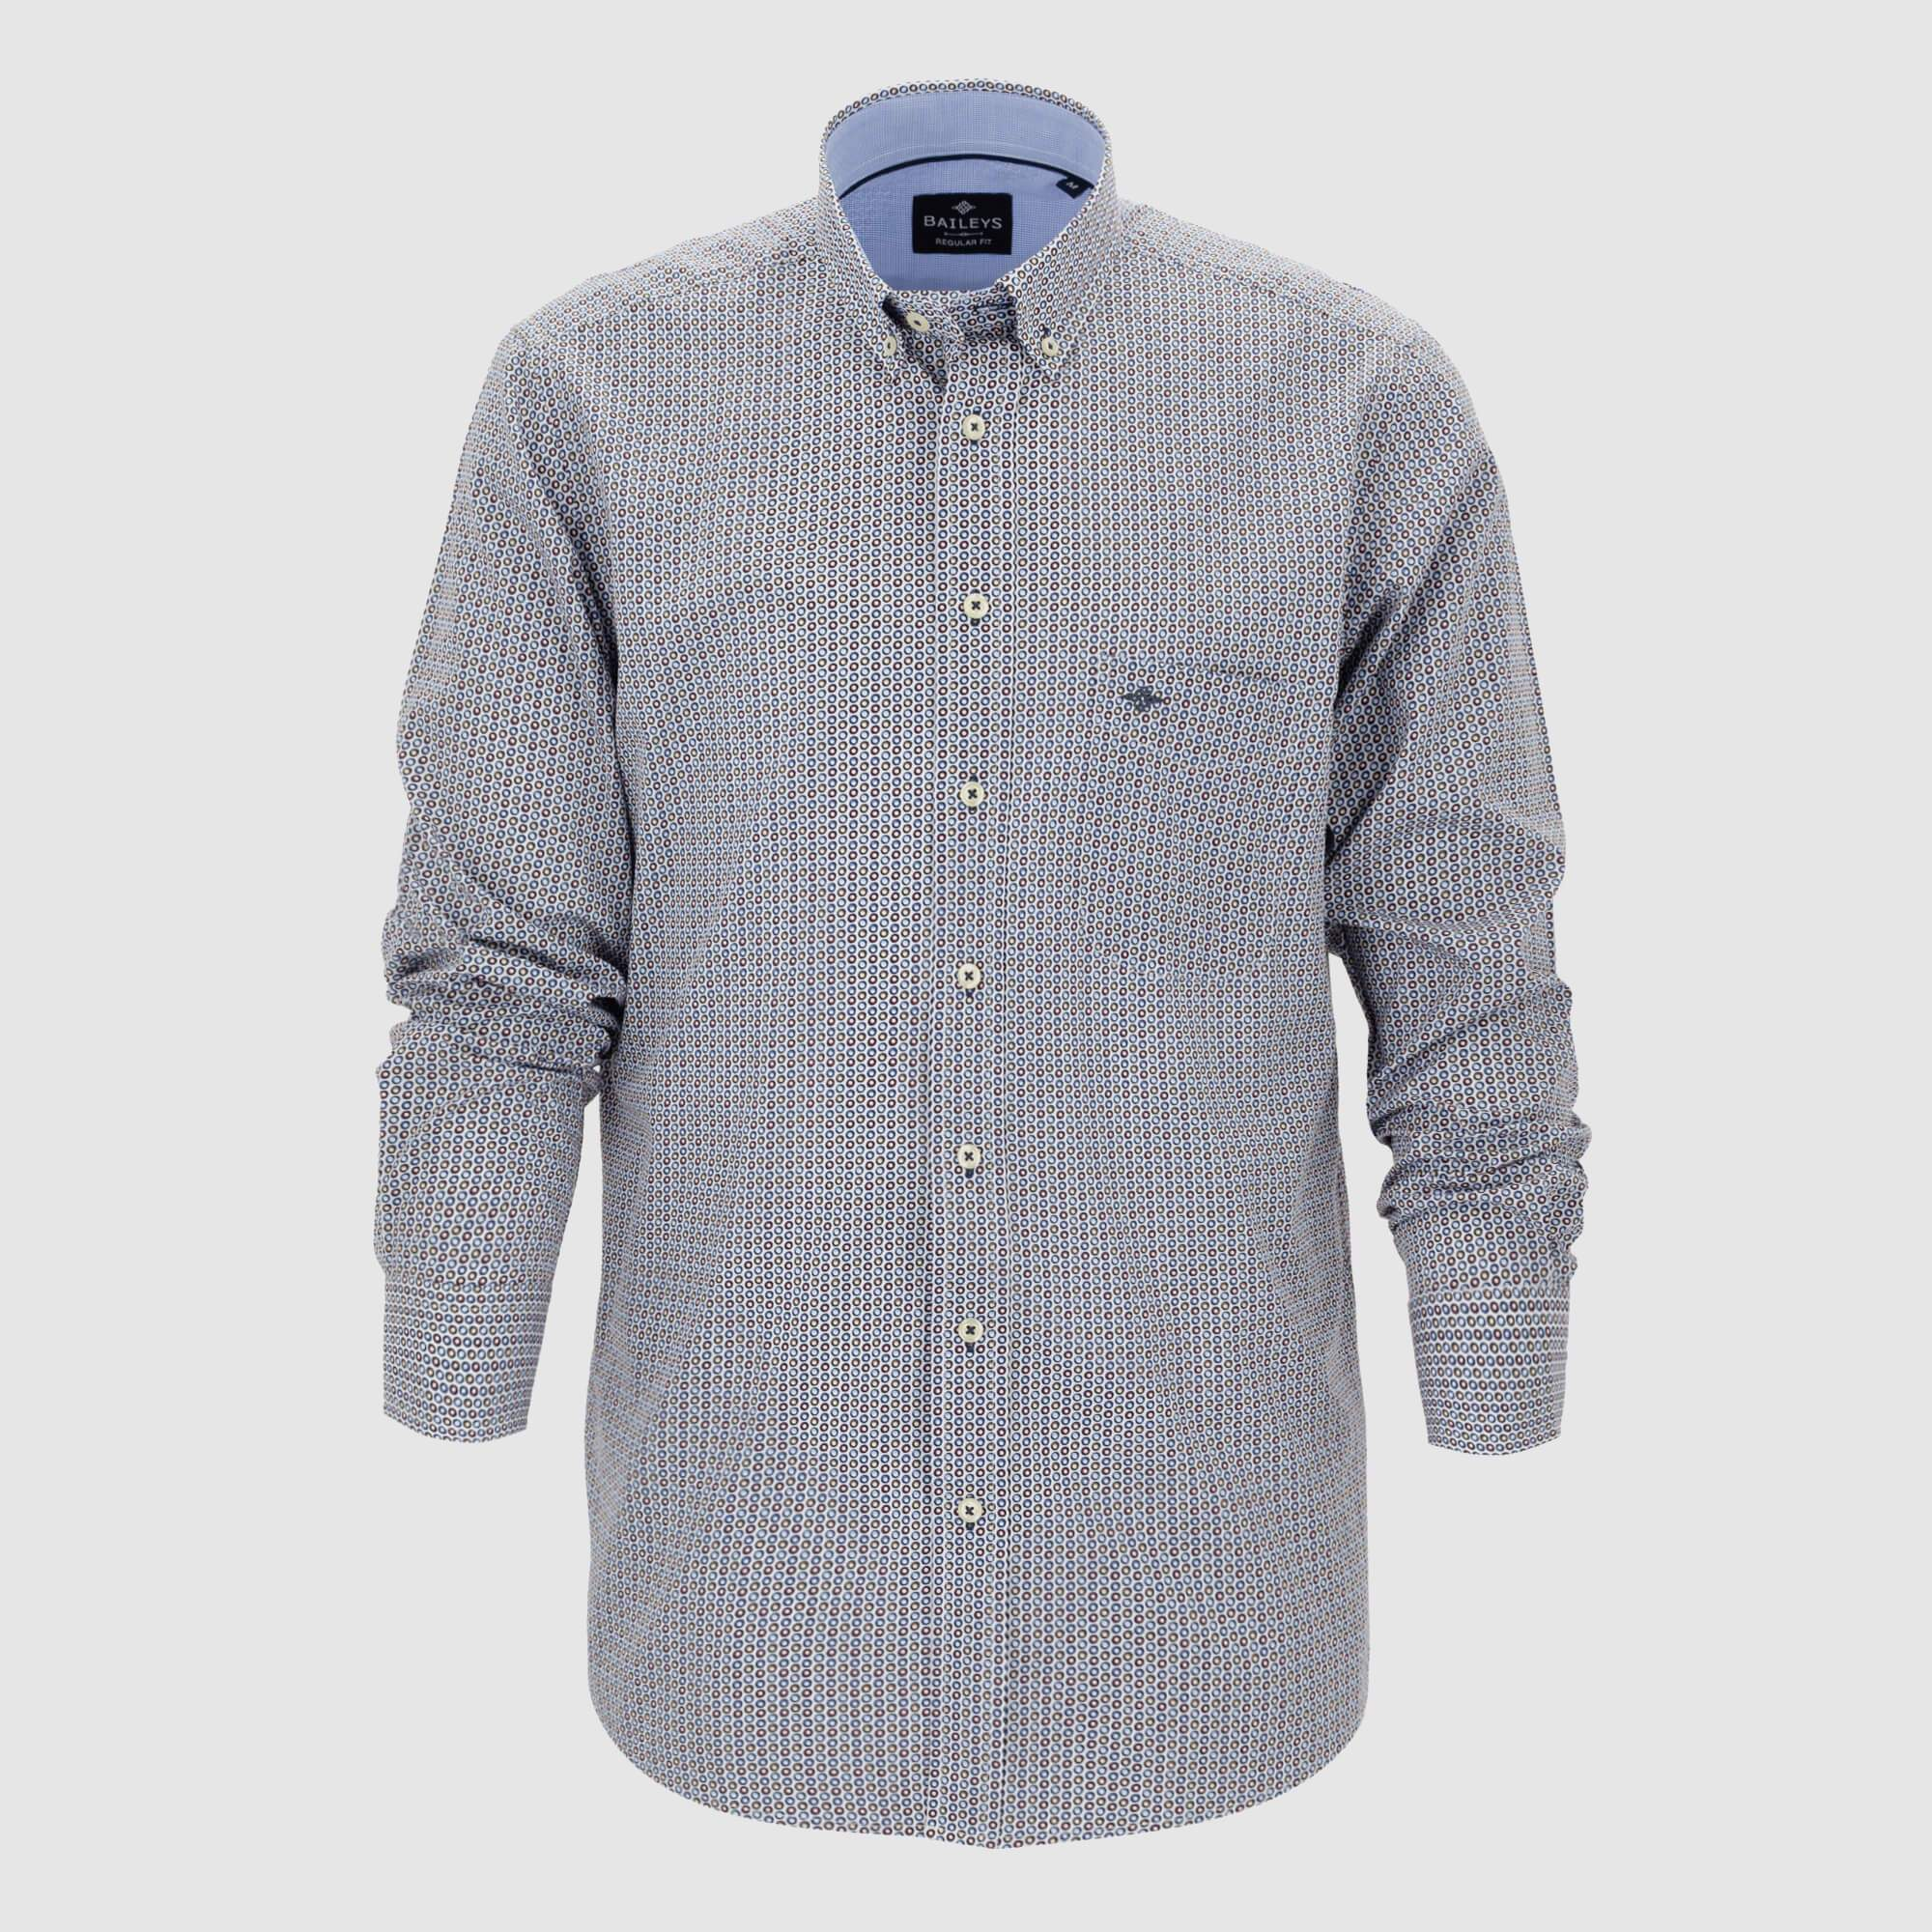 Camisa estampada corte regular fit 927686